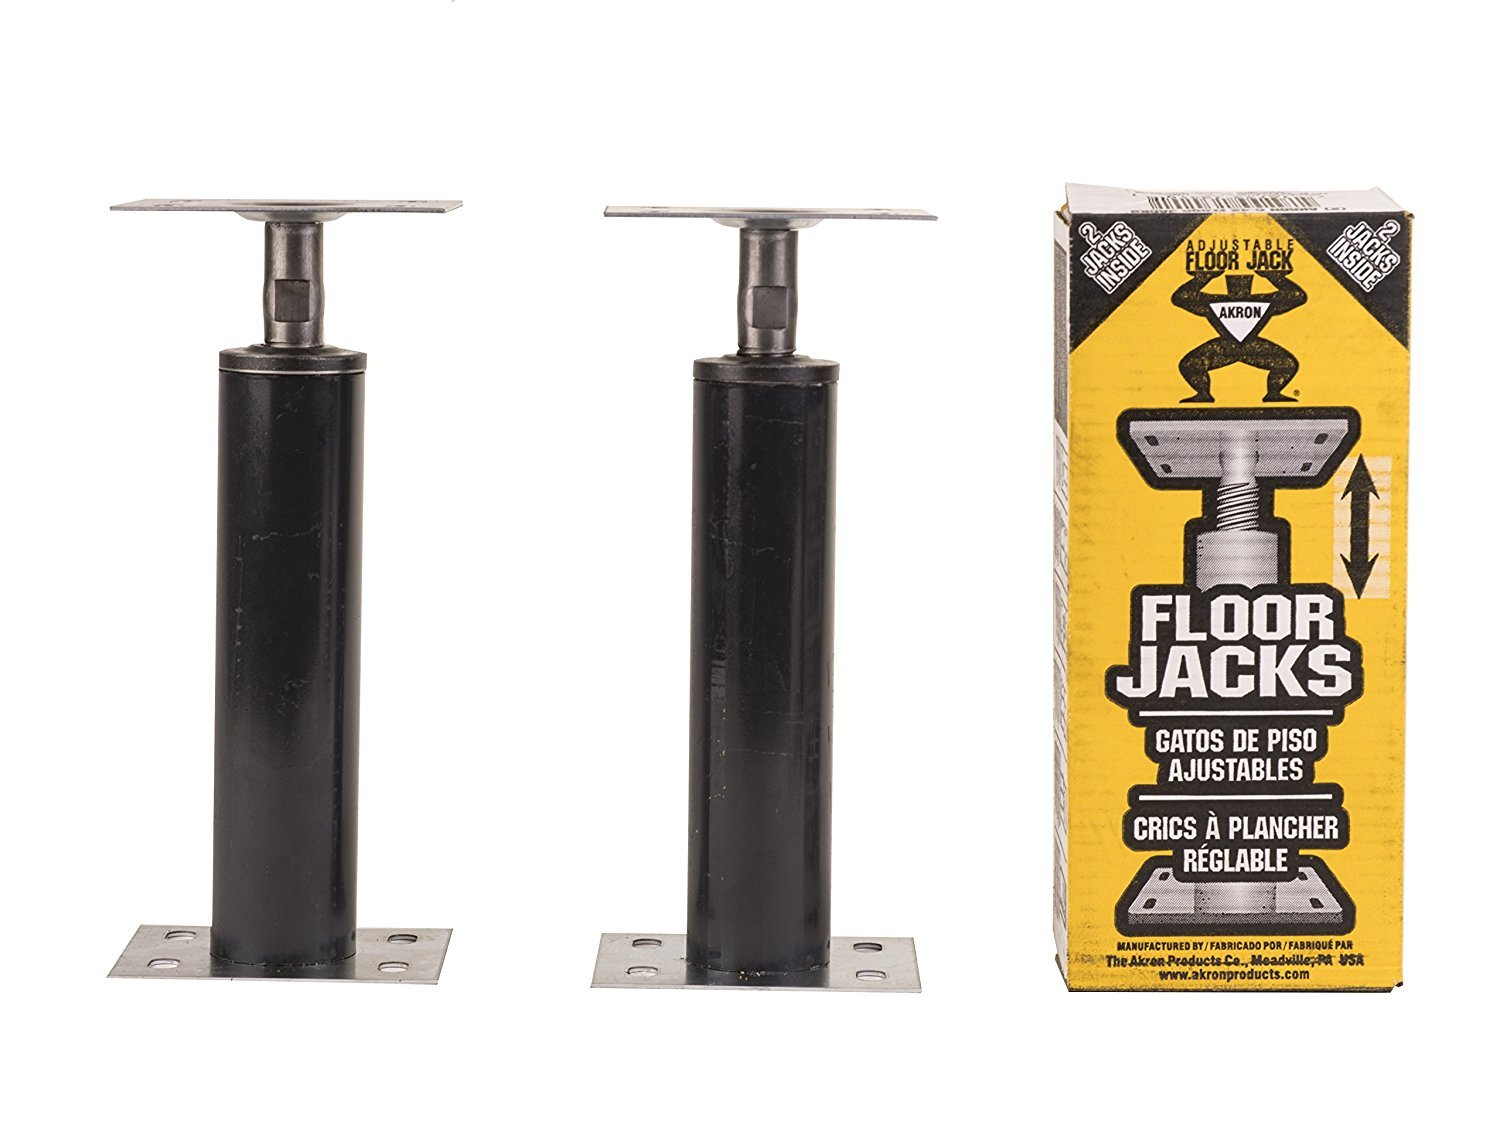 Akron Products J C42 Telescoping Adjustable Floor Jack 1' - 1'3'', 15 Gauge, Adjustable Range 12''-15''(Pack of 2 C4), 12'' Length, 12'' Height, Black